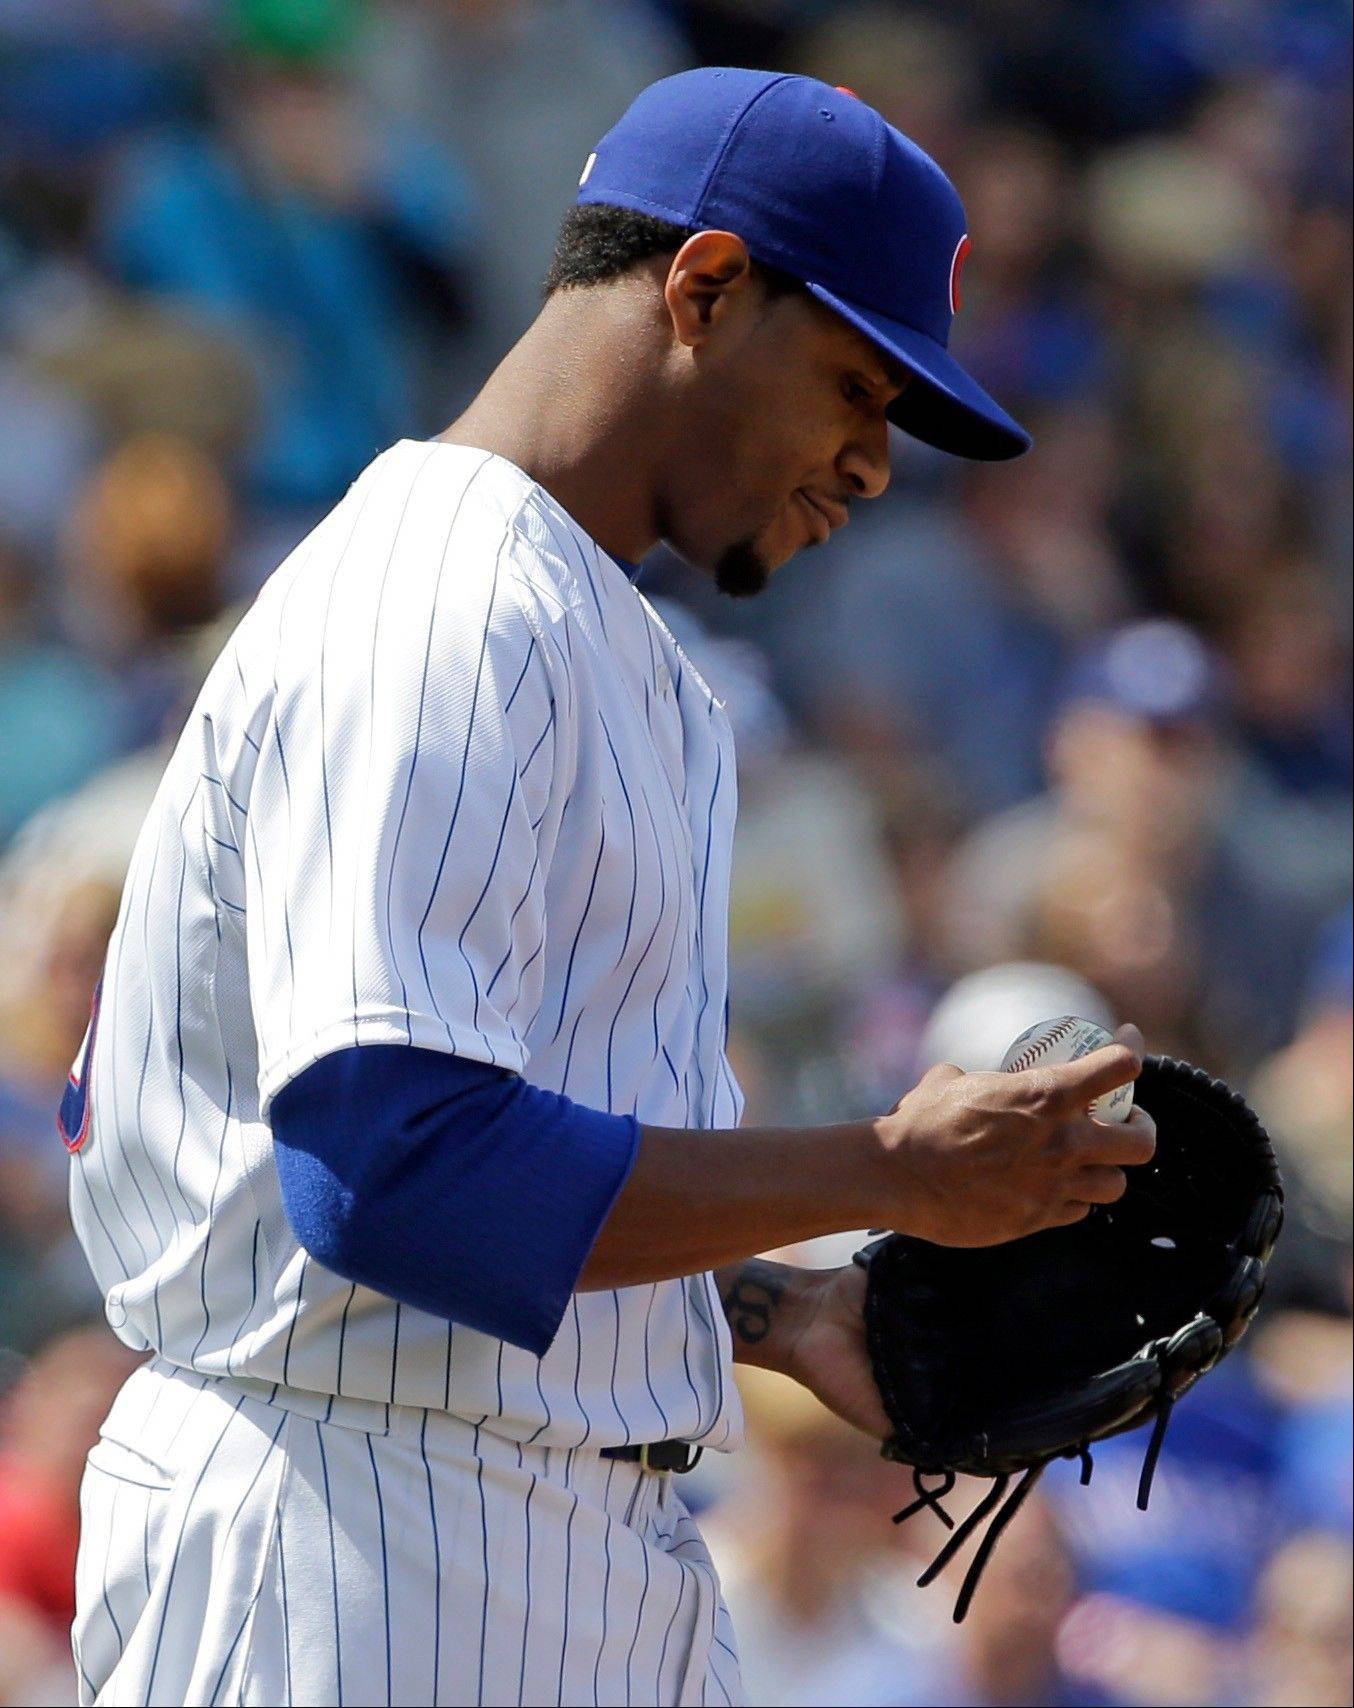 Cubs starter Edwin Jackson reacts after Cincinnati's Jay Bruce hit an run-scoring double in the Reds' 3-run fourth inning Sunday. Jackson fell to 0-5 with the 7-4 loss.